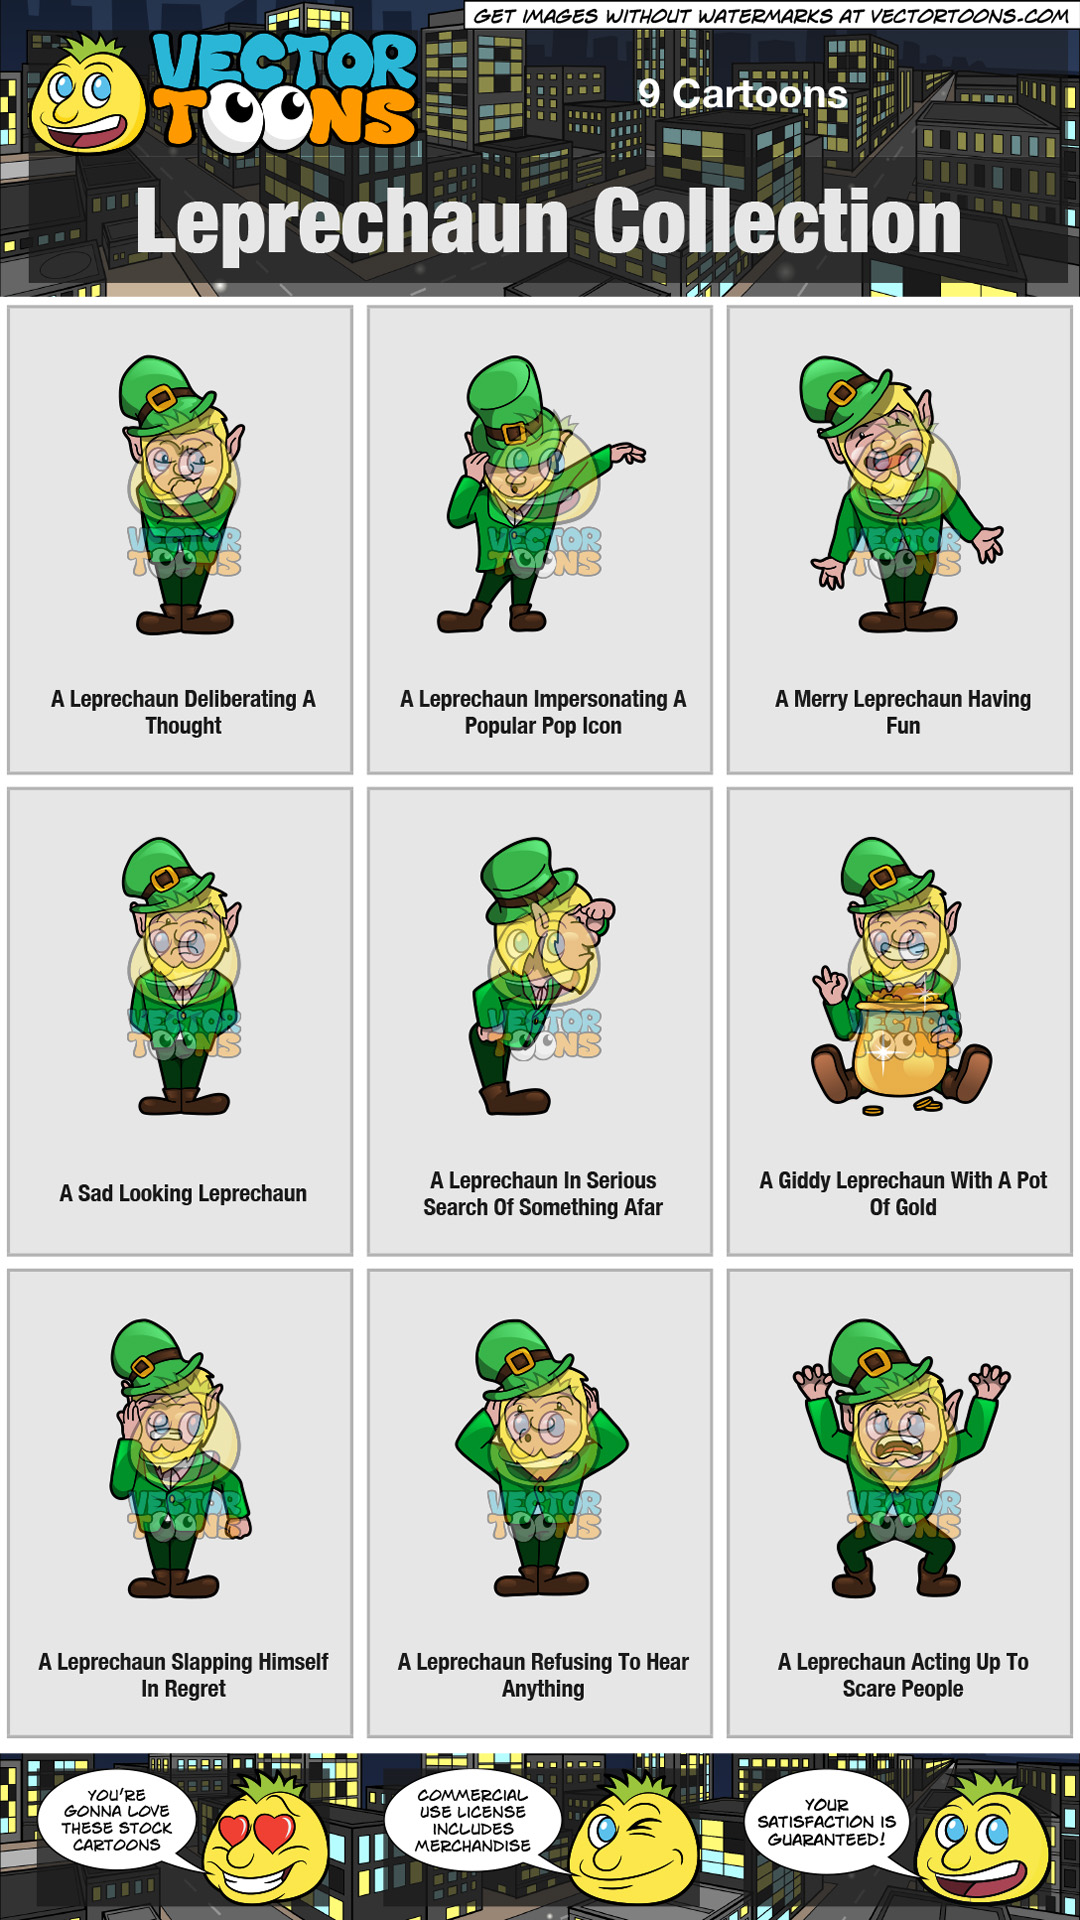 Leprechaun Collection thumbnail